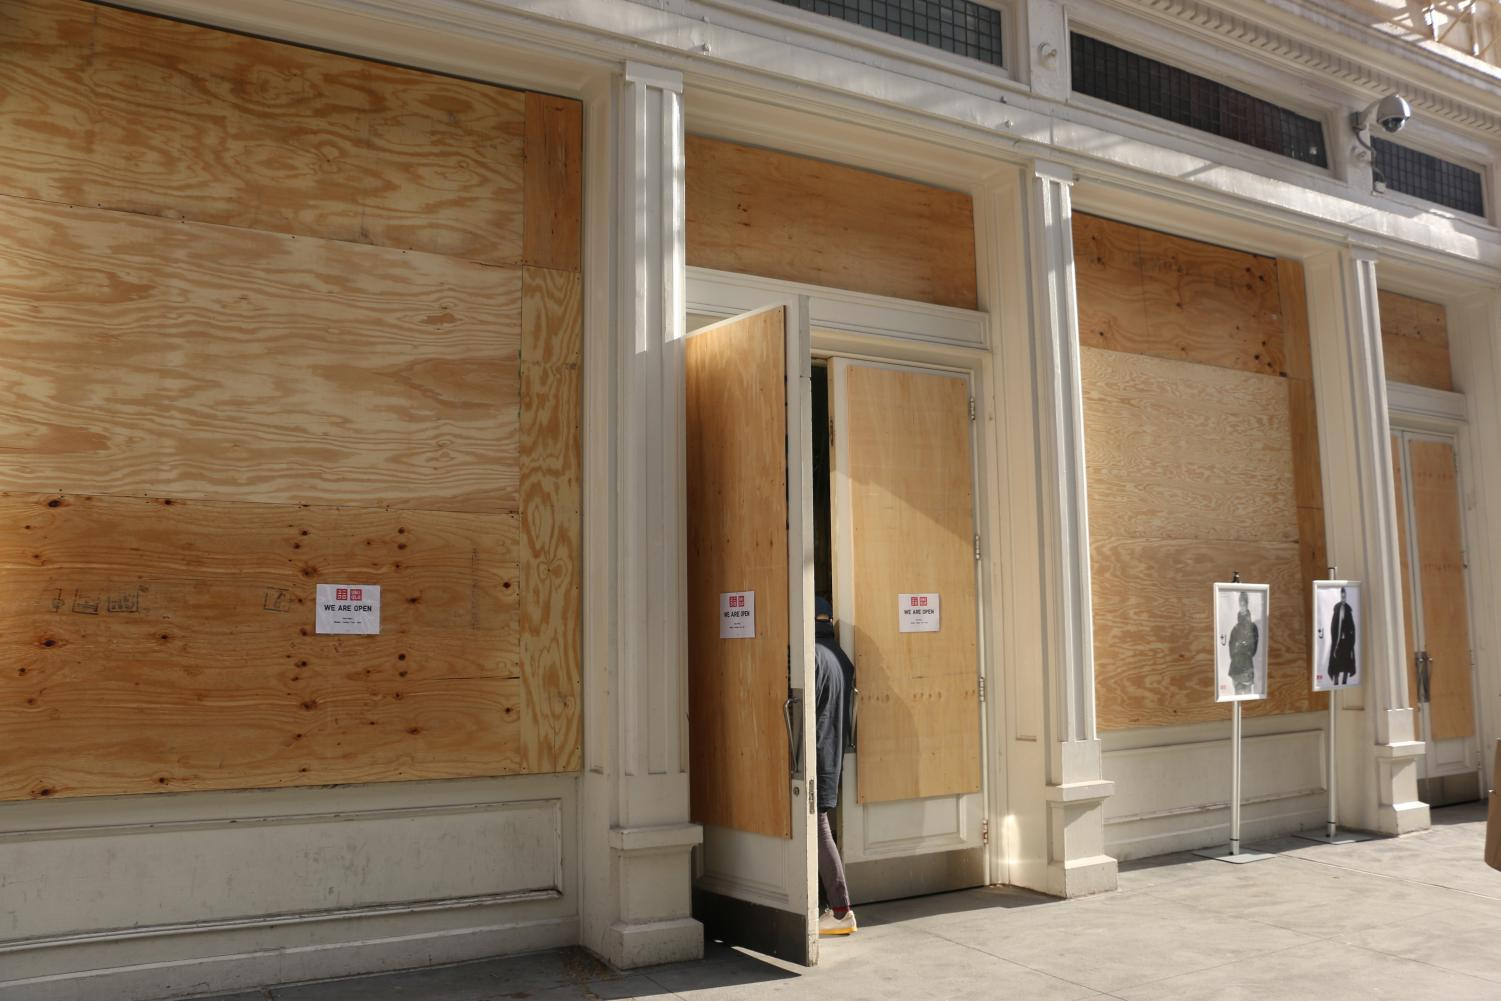 the UNIQLO store with boards on the windows and doors but with the door open for customers to come in